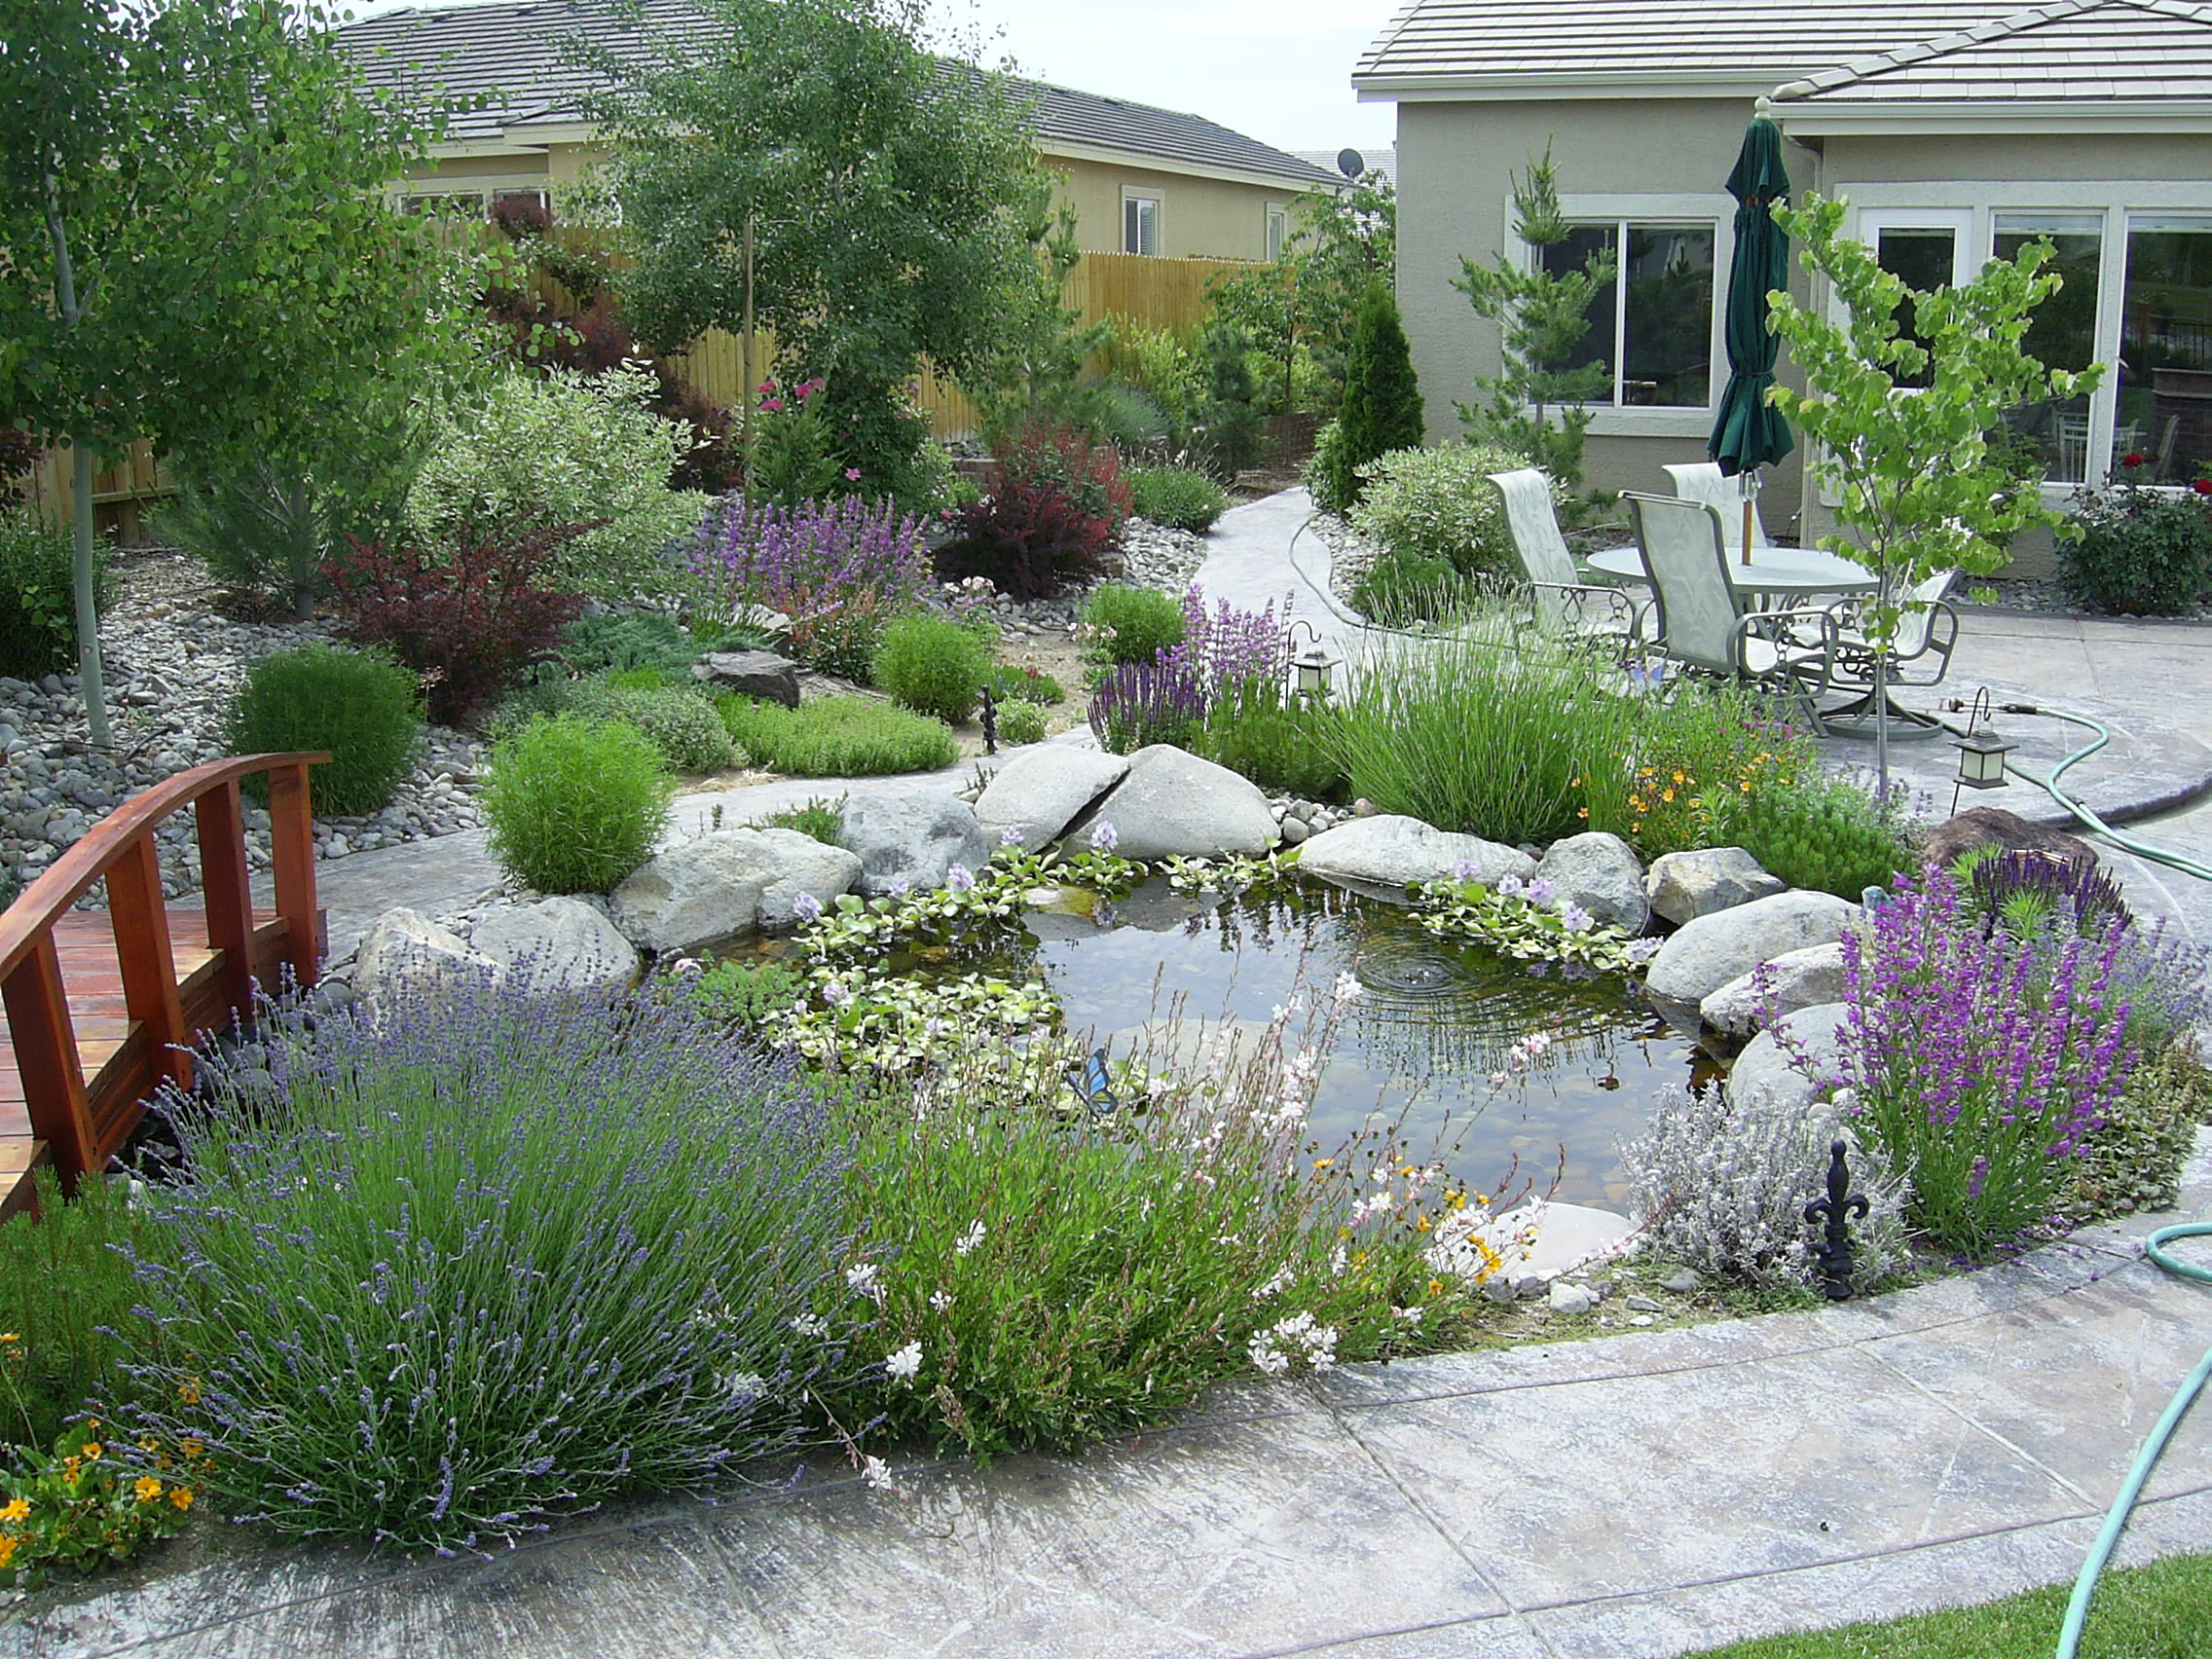 Landscape and garden design implications of water for Landscape design ideas